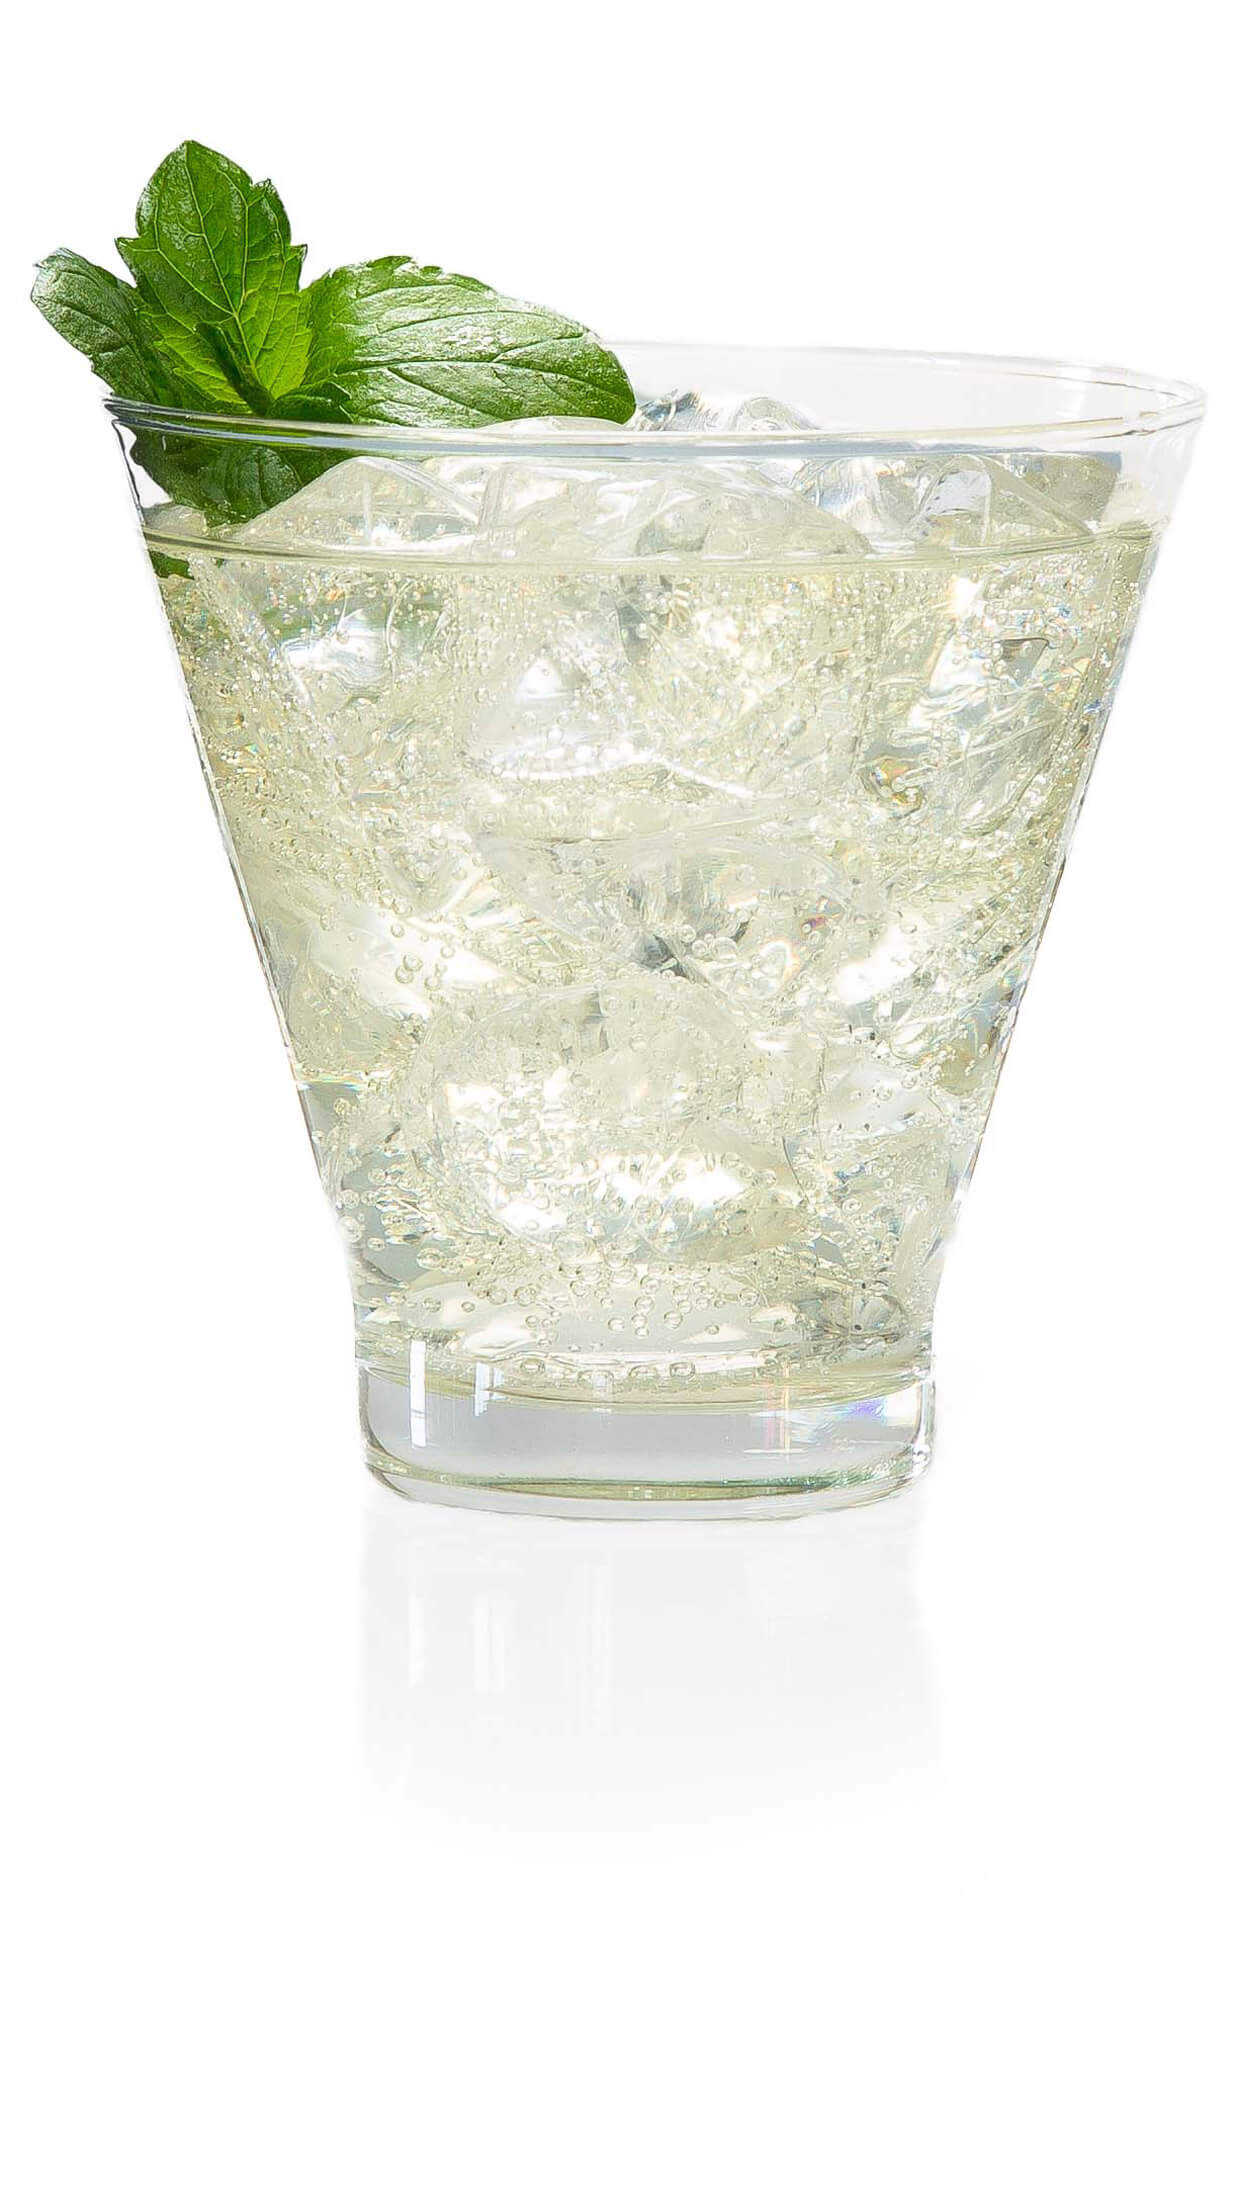 Cucumber lime vodka with EFFEN Cucumber Vodka, lime juice, club soda, mint leaves & a dash bitters.